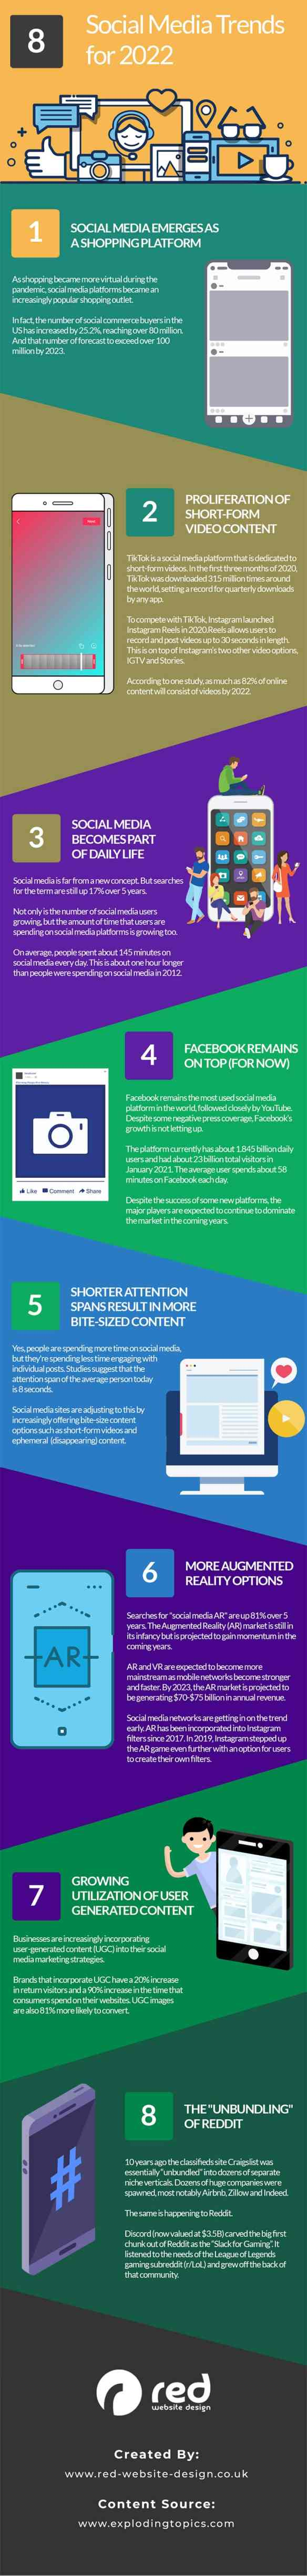 8 Social Media Marketing Trends & Predictions for 2022 & Beyond [Infographic]